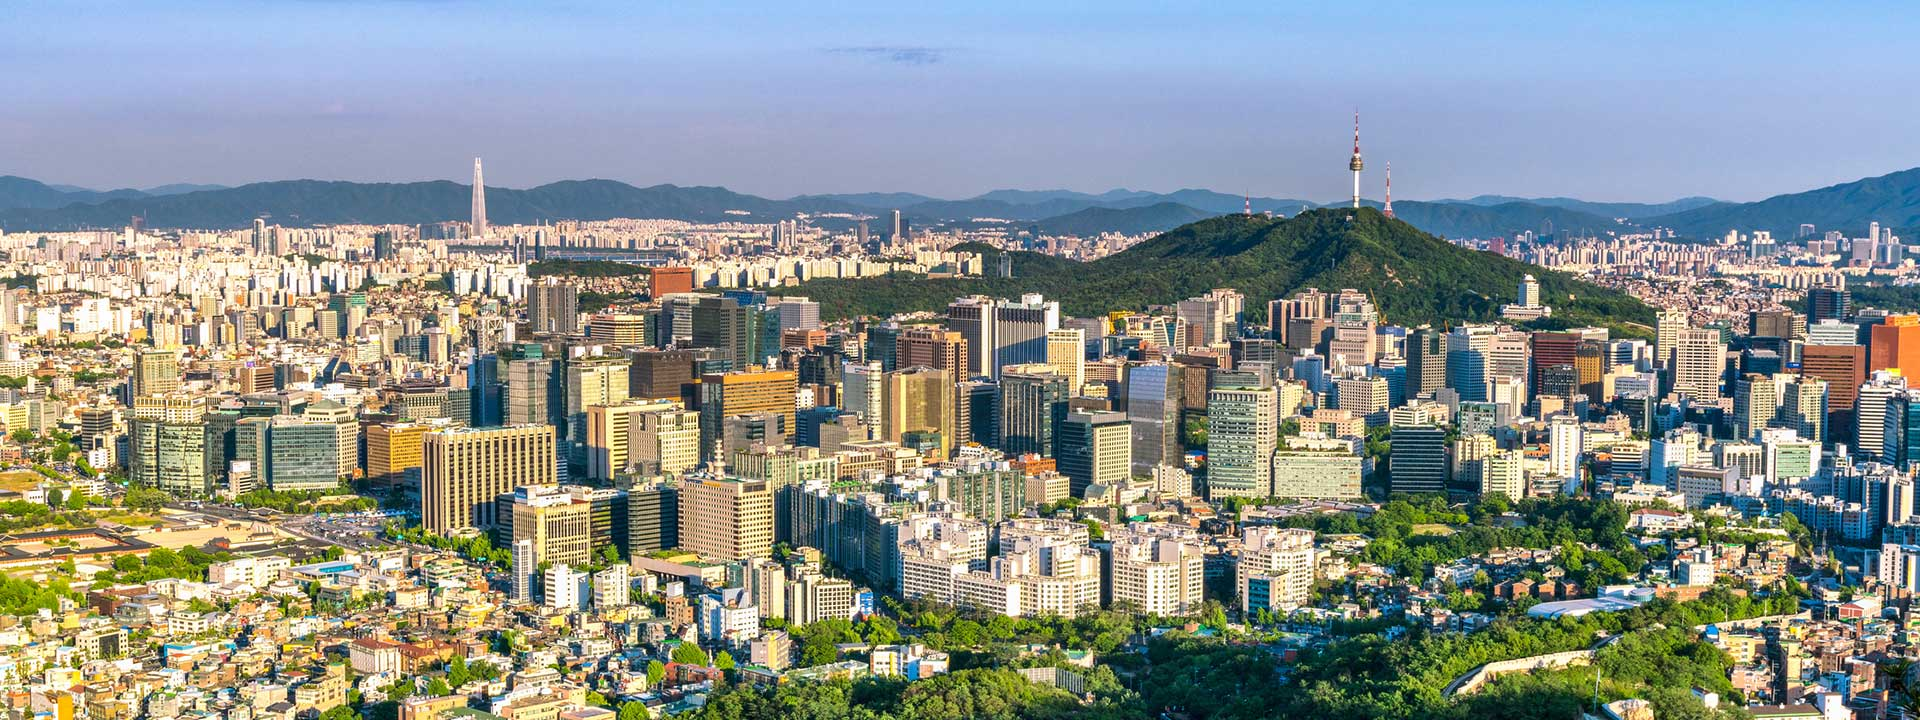 Ricardo appointed to support South Korea's Great Train eXpress project